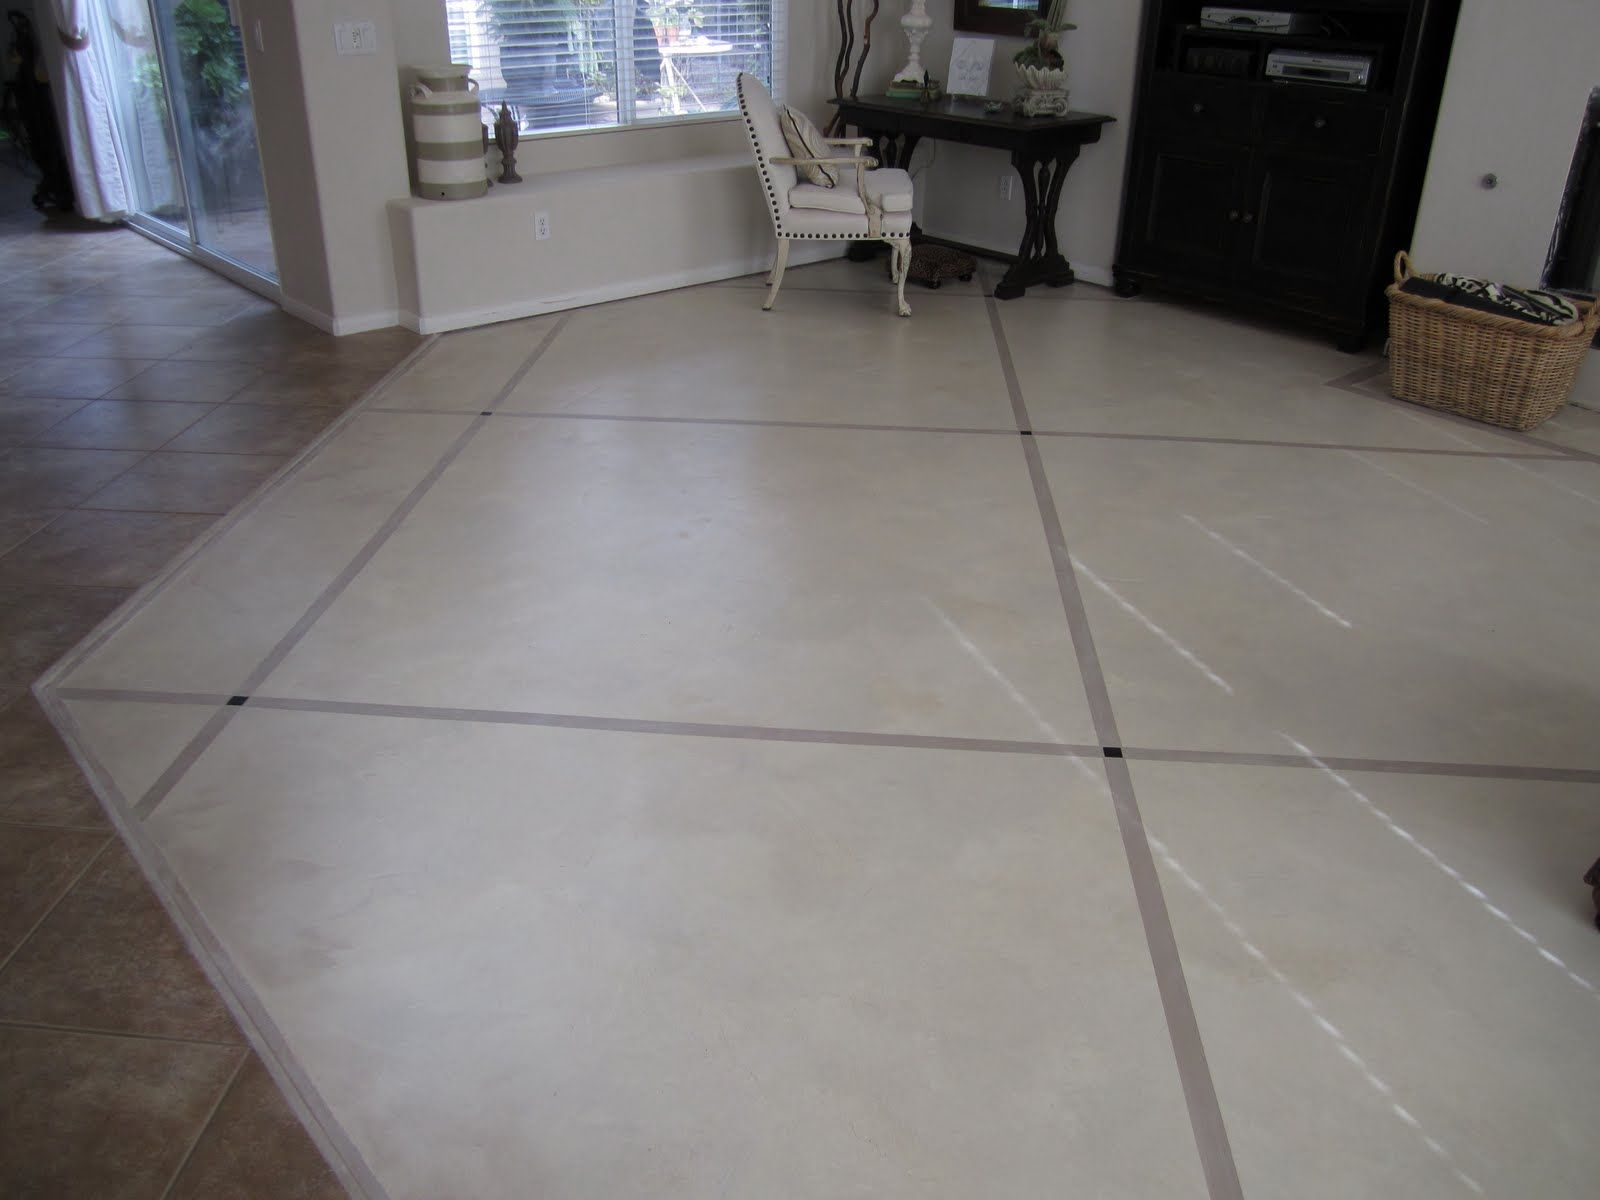 Anythingology step by step instructions on how to prep and paint anythingology step by step instructions on how to prep and paint concrete floors dailygadgetfo Gallery